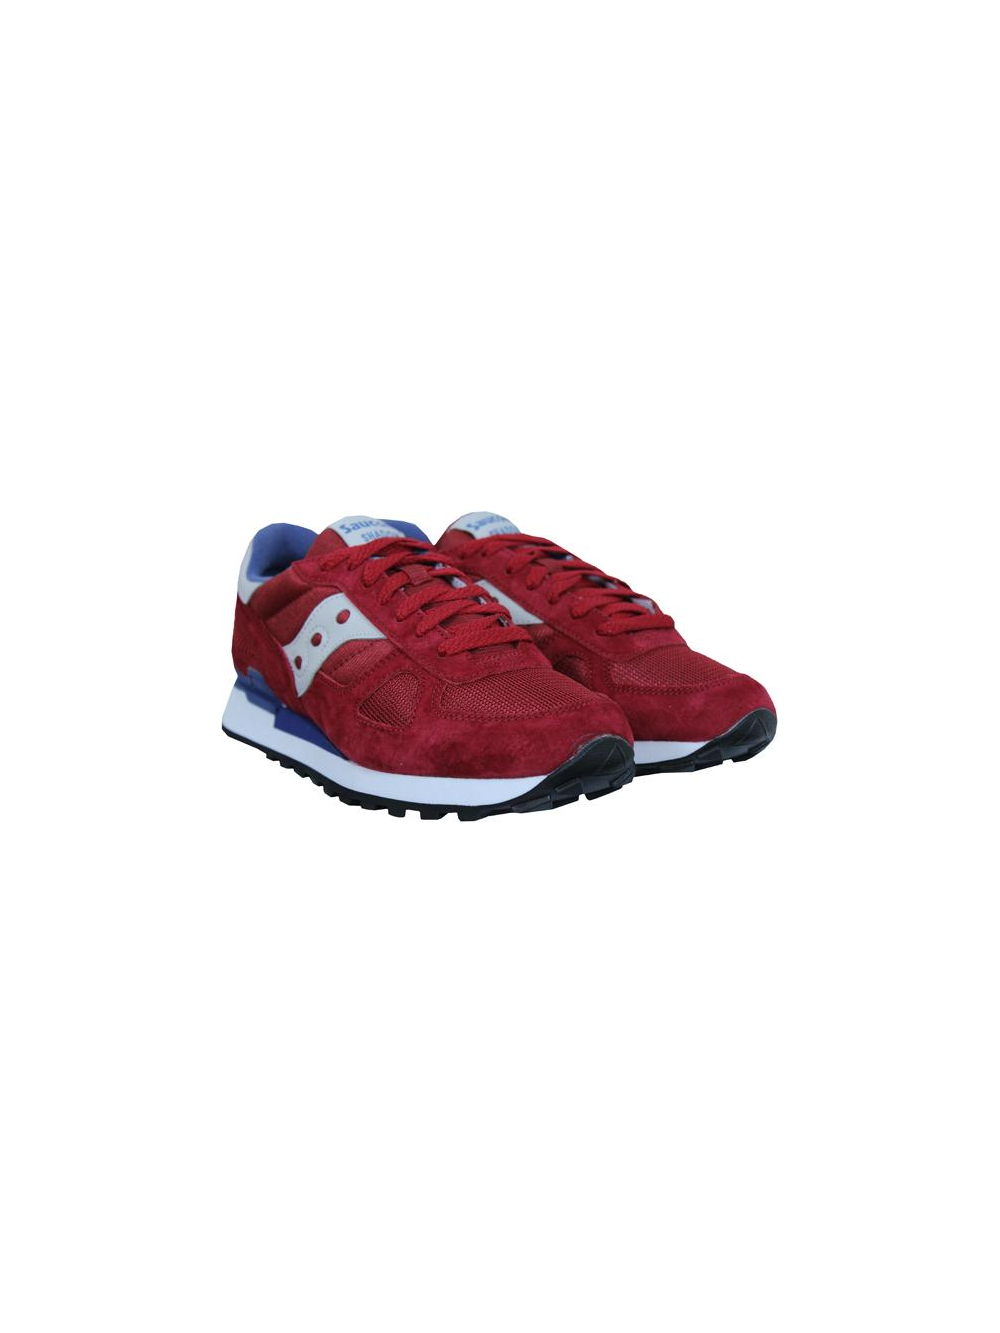 c1f417a17488 Saucony Shadow Original in Red Blue - Northern Threads